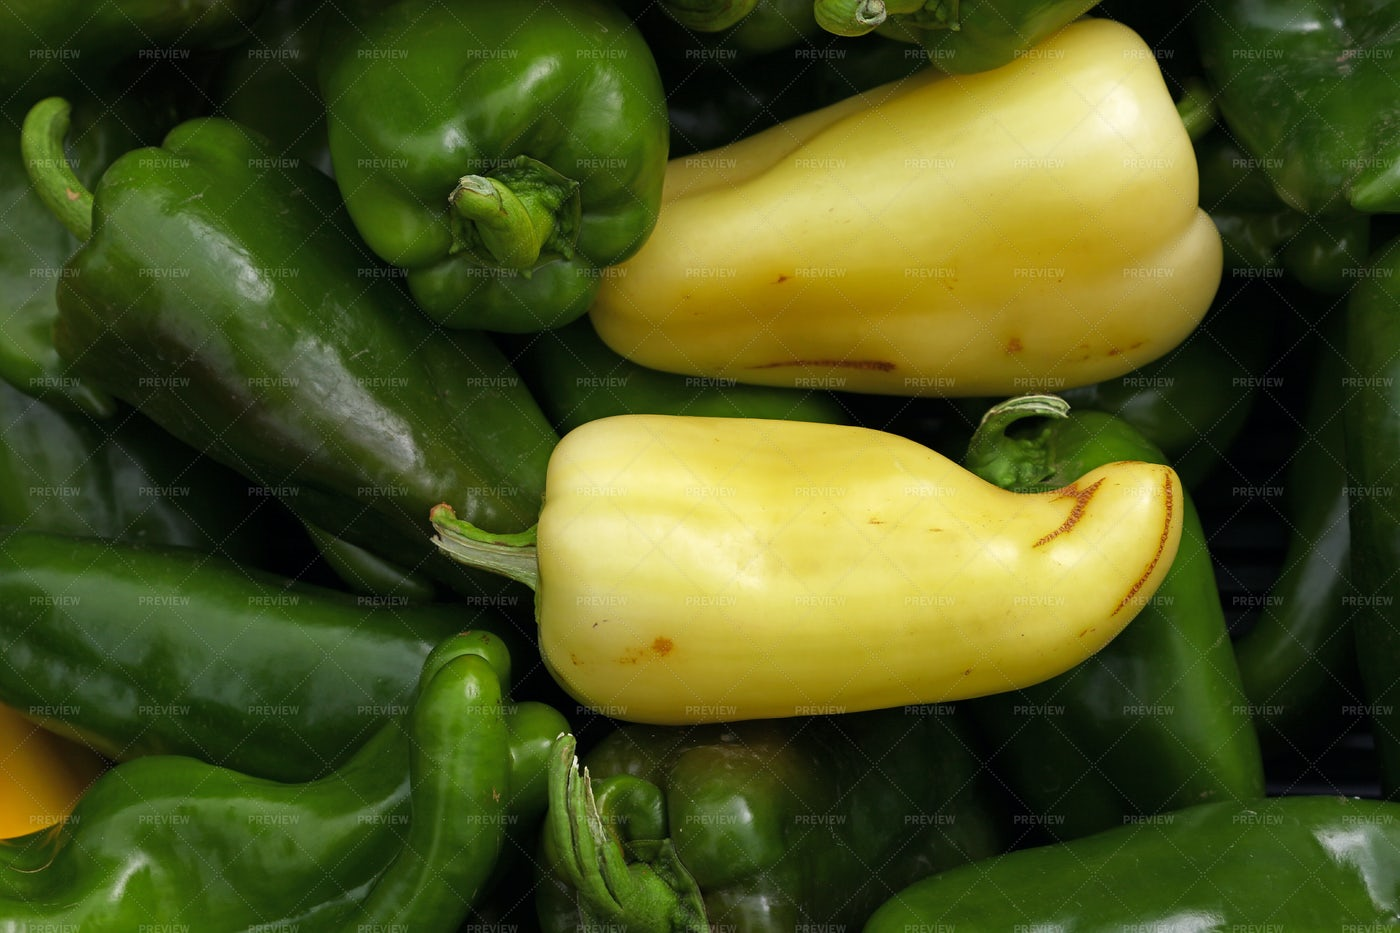 Green And Yellow Bell Peppers: Stock Photos